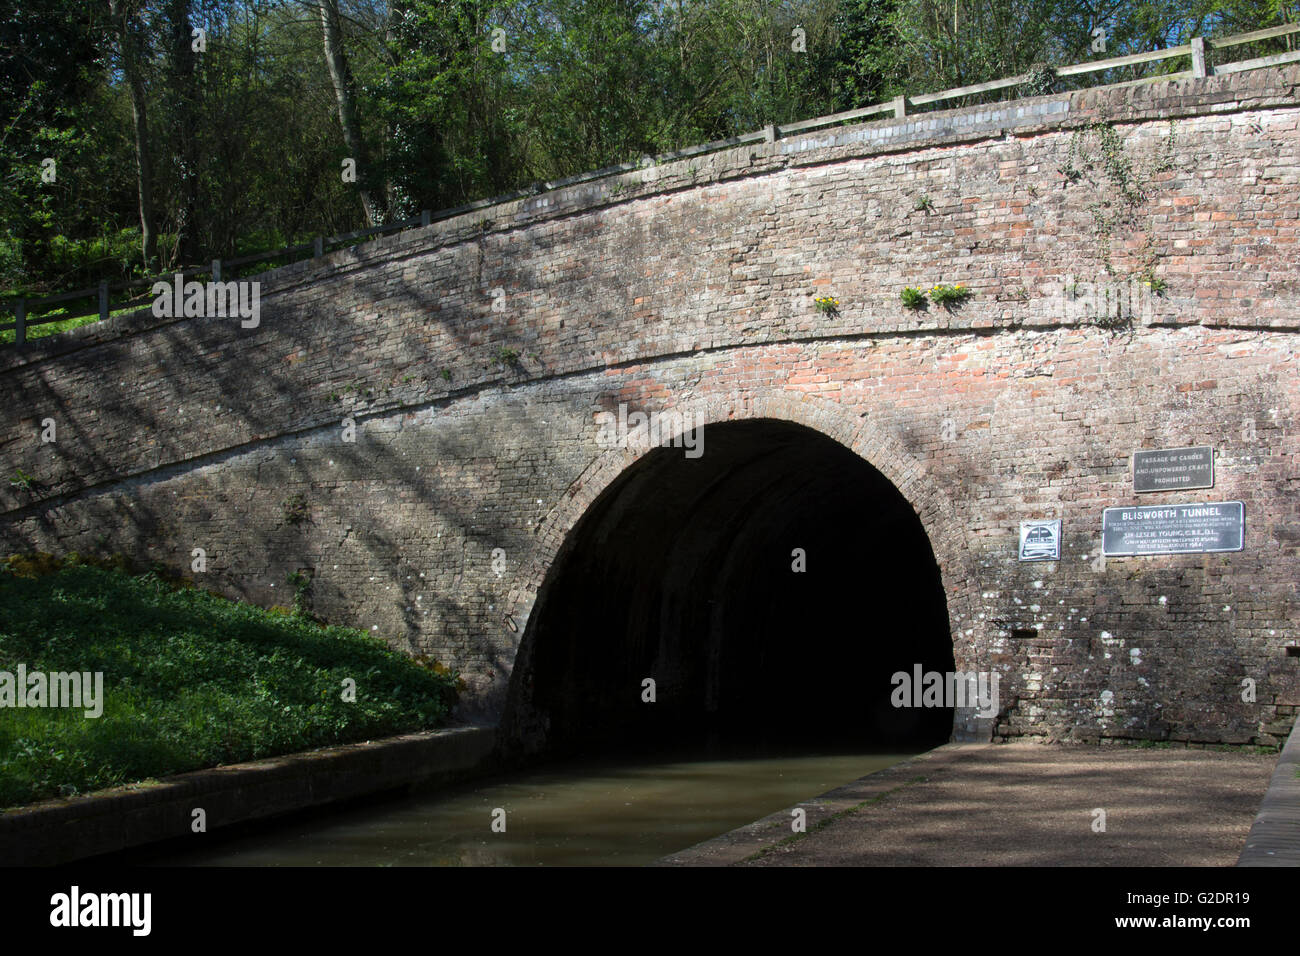 NORTHAMPTONSHIRE; BLISWORTH TUNNEL ENTRANCE; GRAND UNION CANAL; - Stock Image